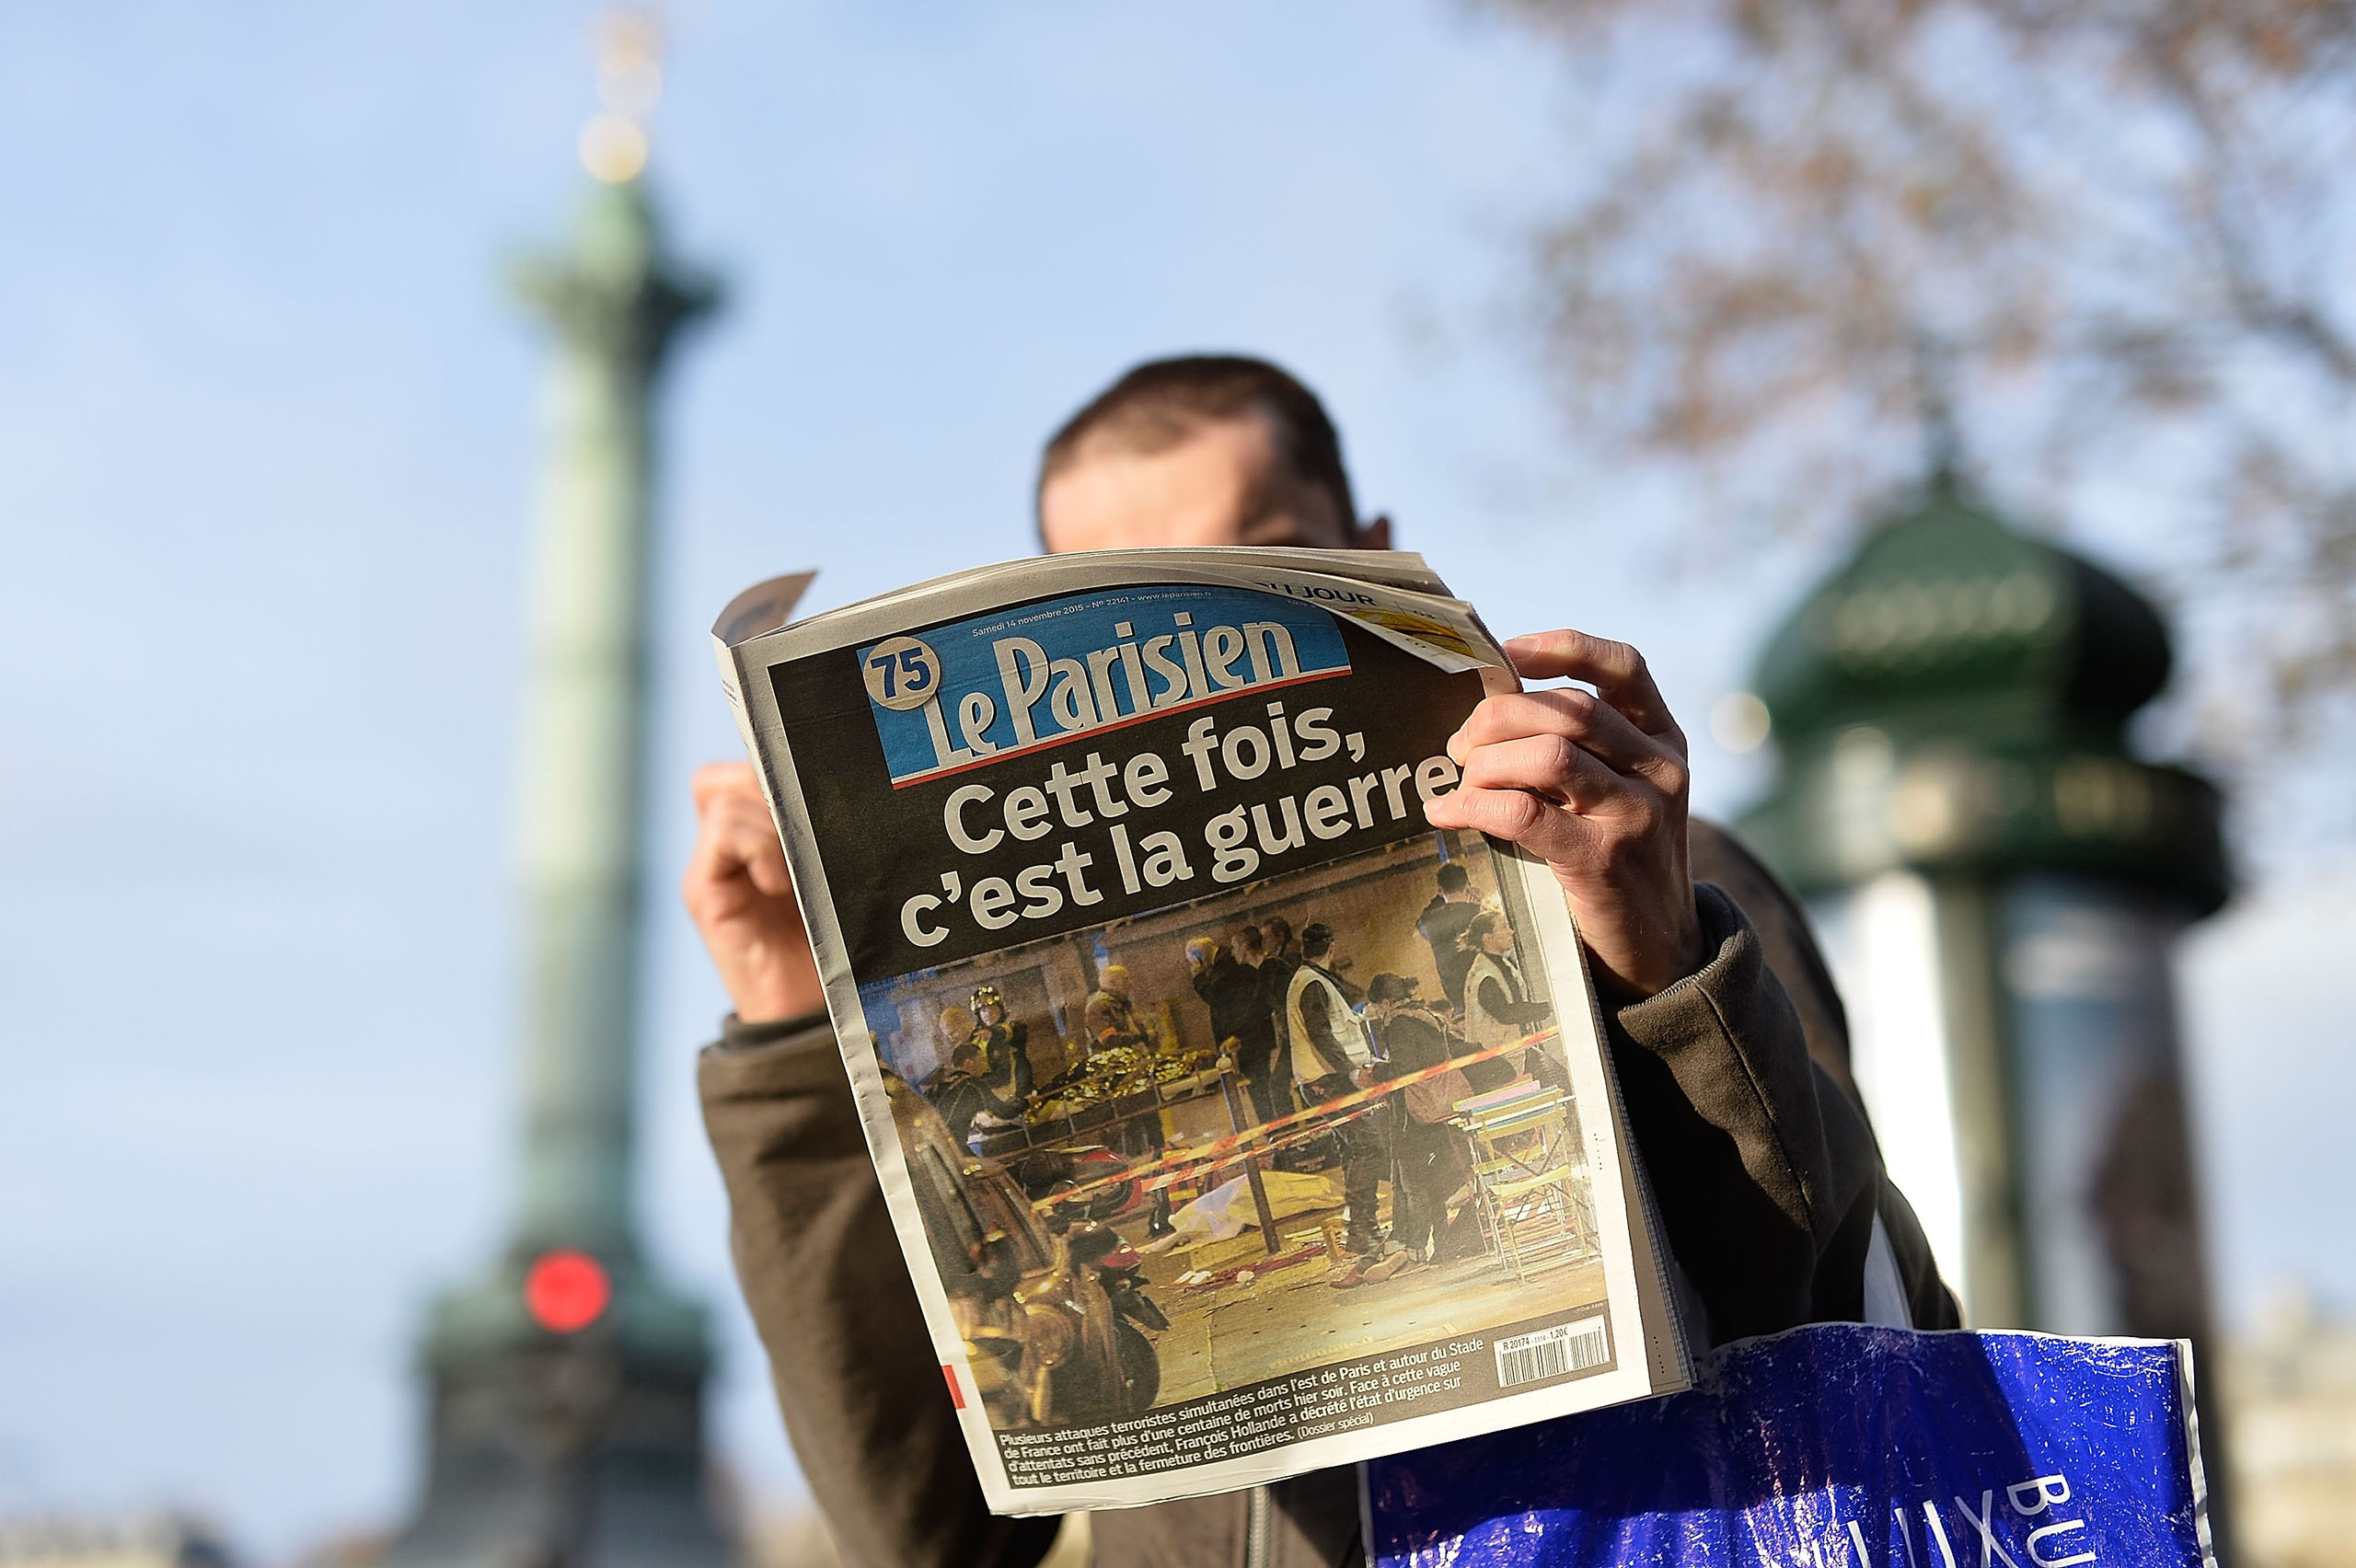 A man reads a French newspaper after a terrorist attack in Paris on Nov. 14, 2015.